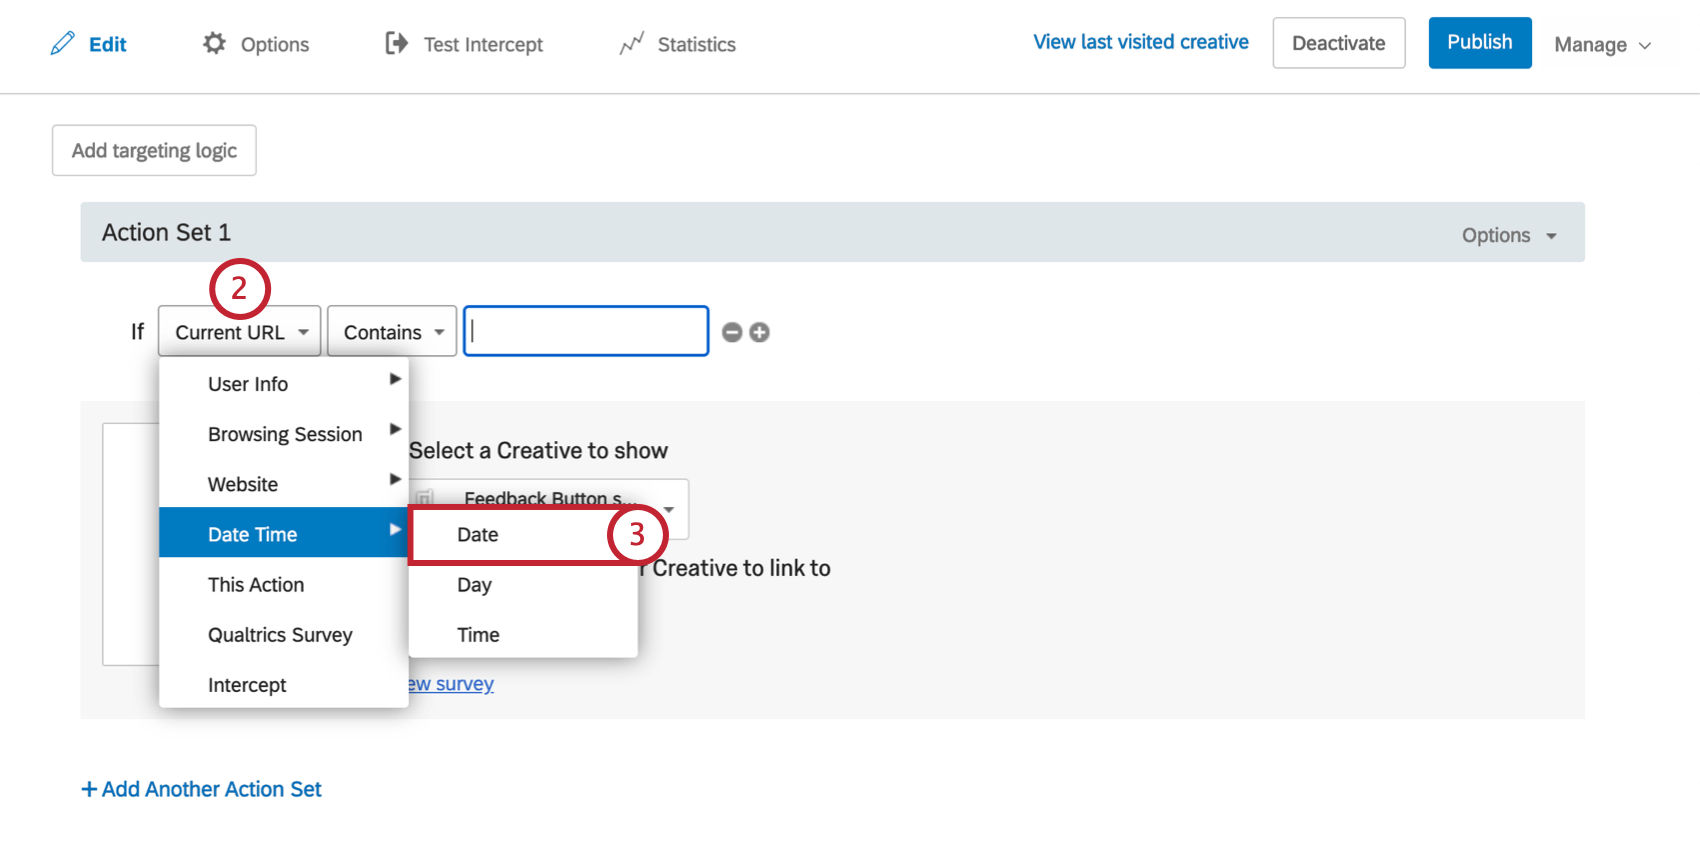 First field in date condition is dropped down. Date Time is selected, and Date is selected